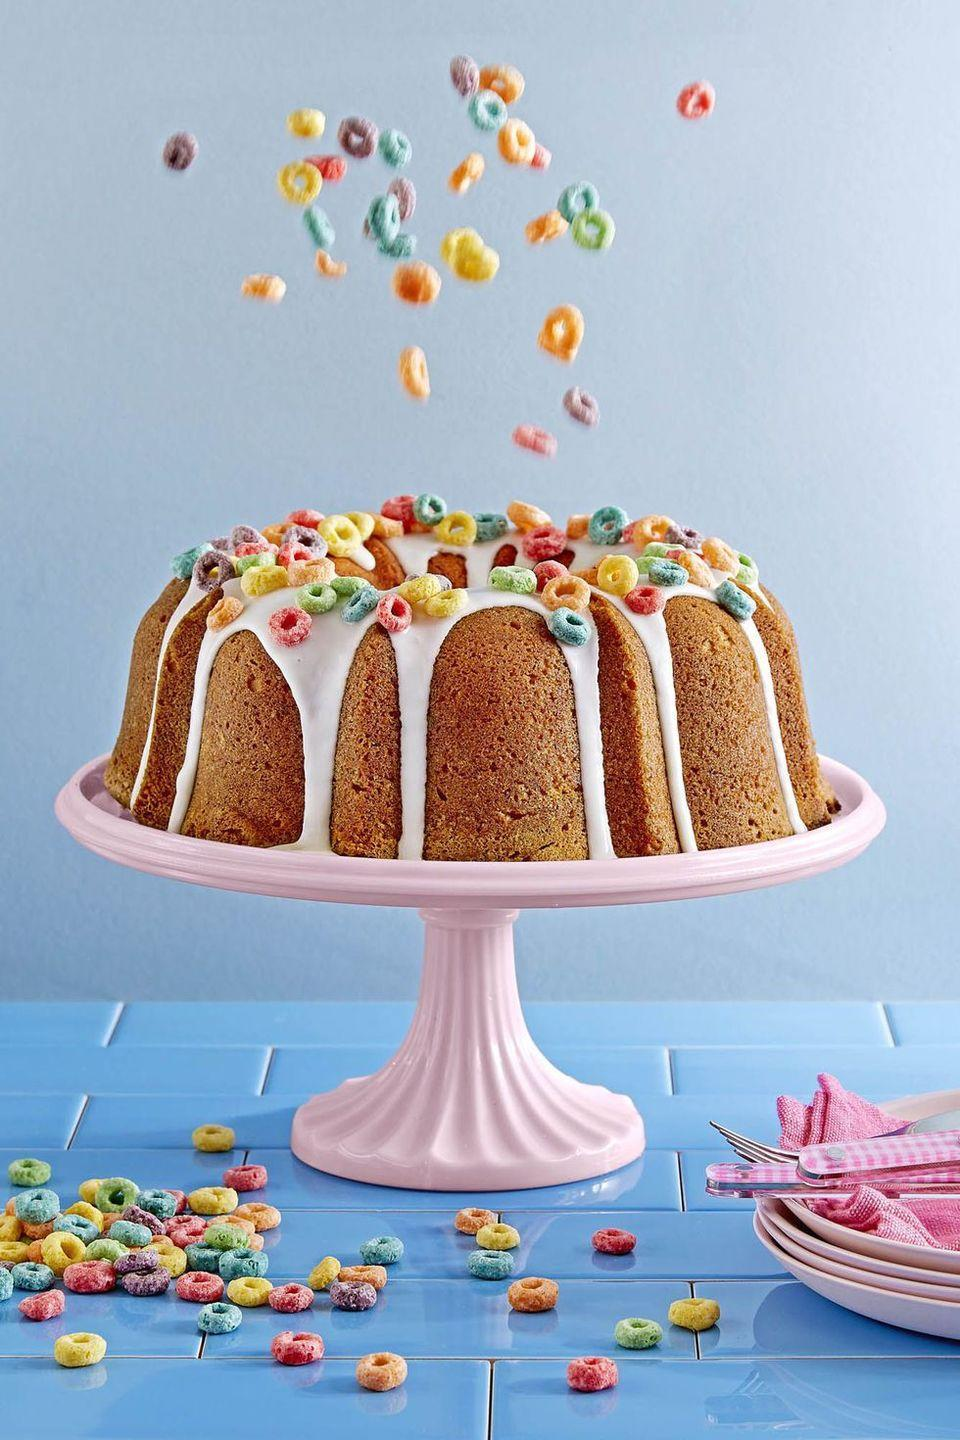 """<p>The perfect post-brunch treat: Sprinkle your favorite kid's cereal atop this sweet cake for a touch of color. </p><p><em><a href=""""https://www.countryliving.com/food-drinks/recipes/a46351/froot-loops-cake-recipe/"""" rel=""""nofollow noopener"""" target=""""_blank"""" data-ylk=""""slk:Get the recipe for Country Living »"""" class=""""link rapid-noclick-resp"""">Get the recipe for Country Living »</a></em></p><p><strong>RELATED:</strong> <a href=""""https://www.goodhousekeeping.com/holidays/mothers-day/g676/mothers-day-brunch-recipes/"""" rel=""""nofollow noopener"""" target=""""_blank"""" data-ylk=""""slk:40 Delicious Mother's Day Brunch Recipes That Mom Will Love"""" class=""""link rapid-noclick-resp"""">40 Delicious Mother's Day Brunch Recipes That Mom Will Love</a></p>"""